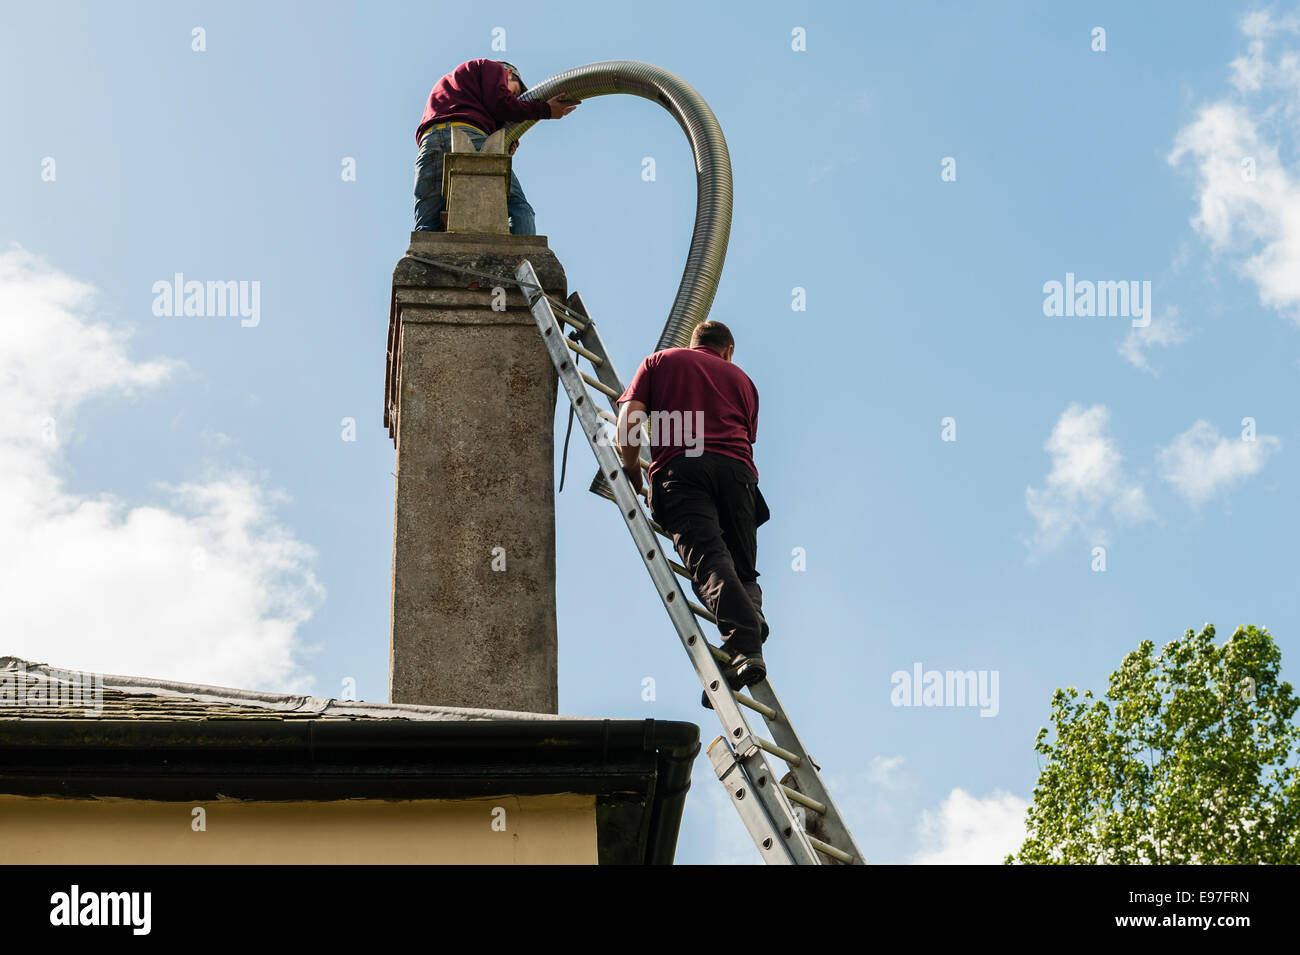 Inserting a flexible chimney liner into the chimney of an old house, UK - Stock Image